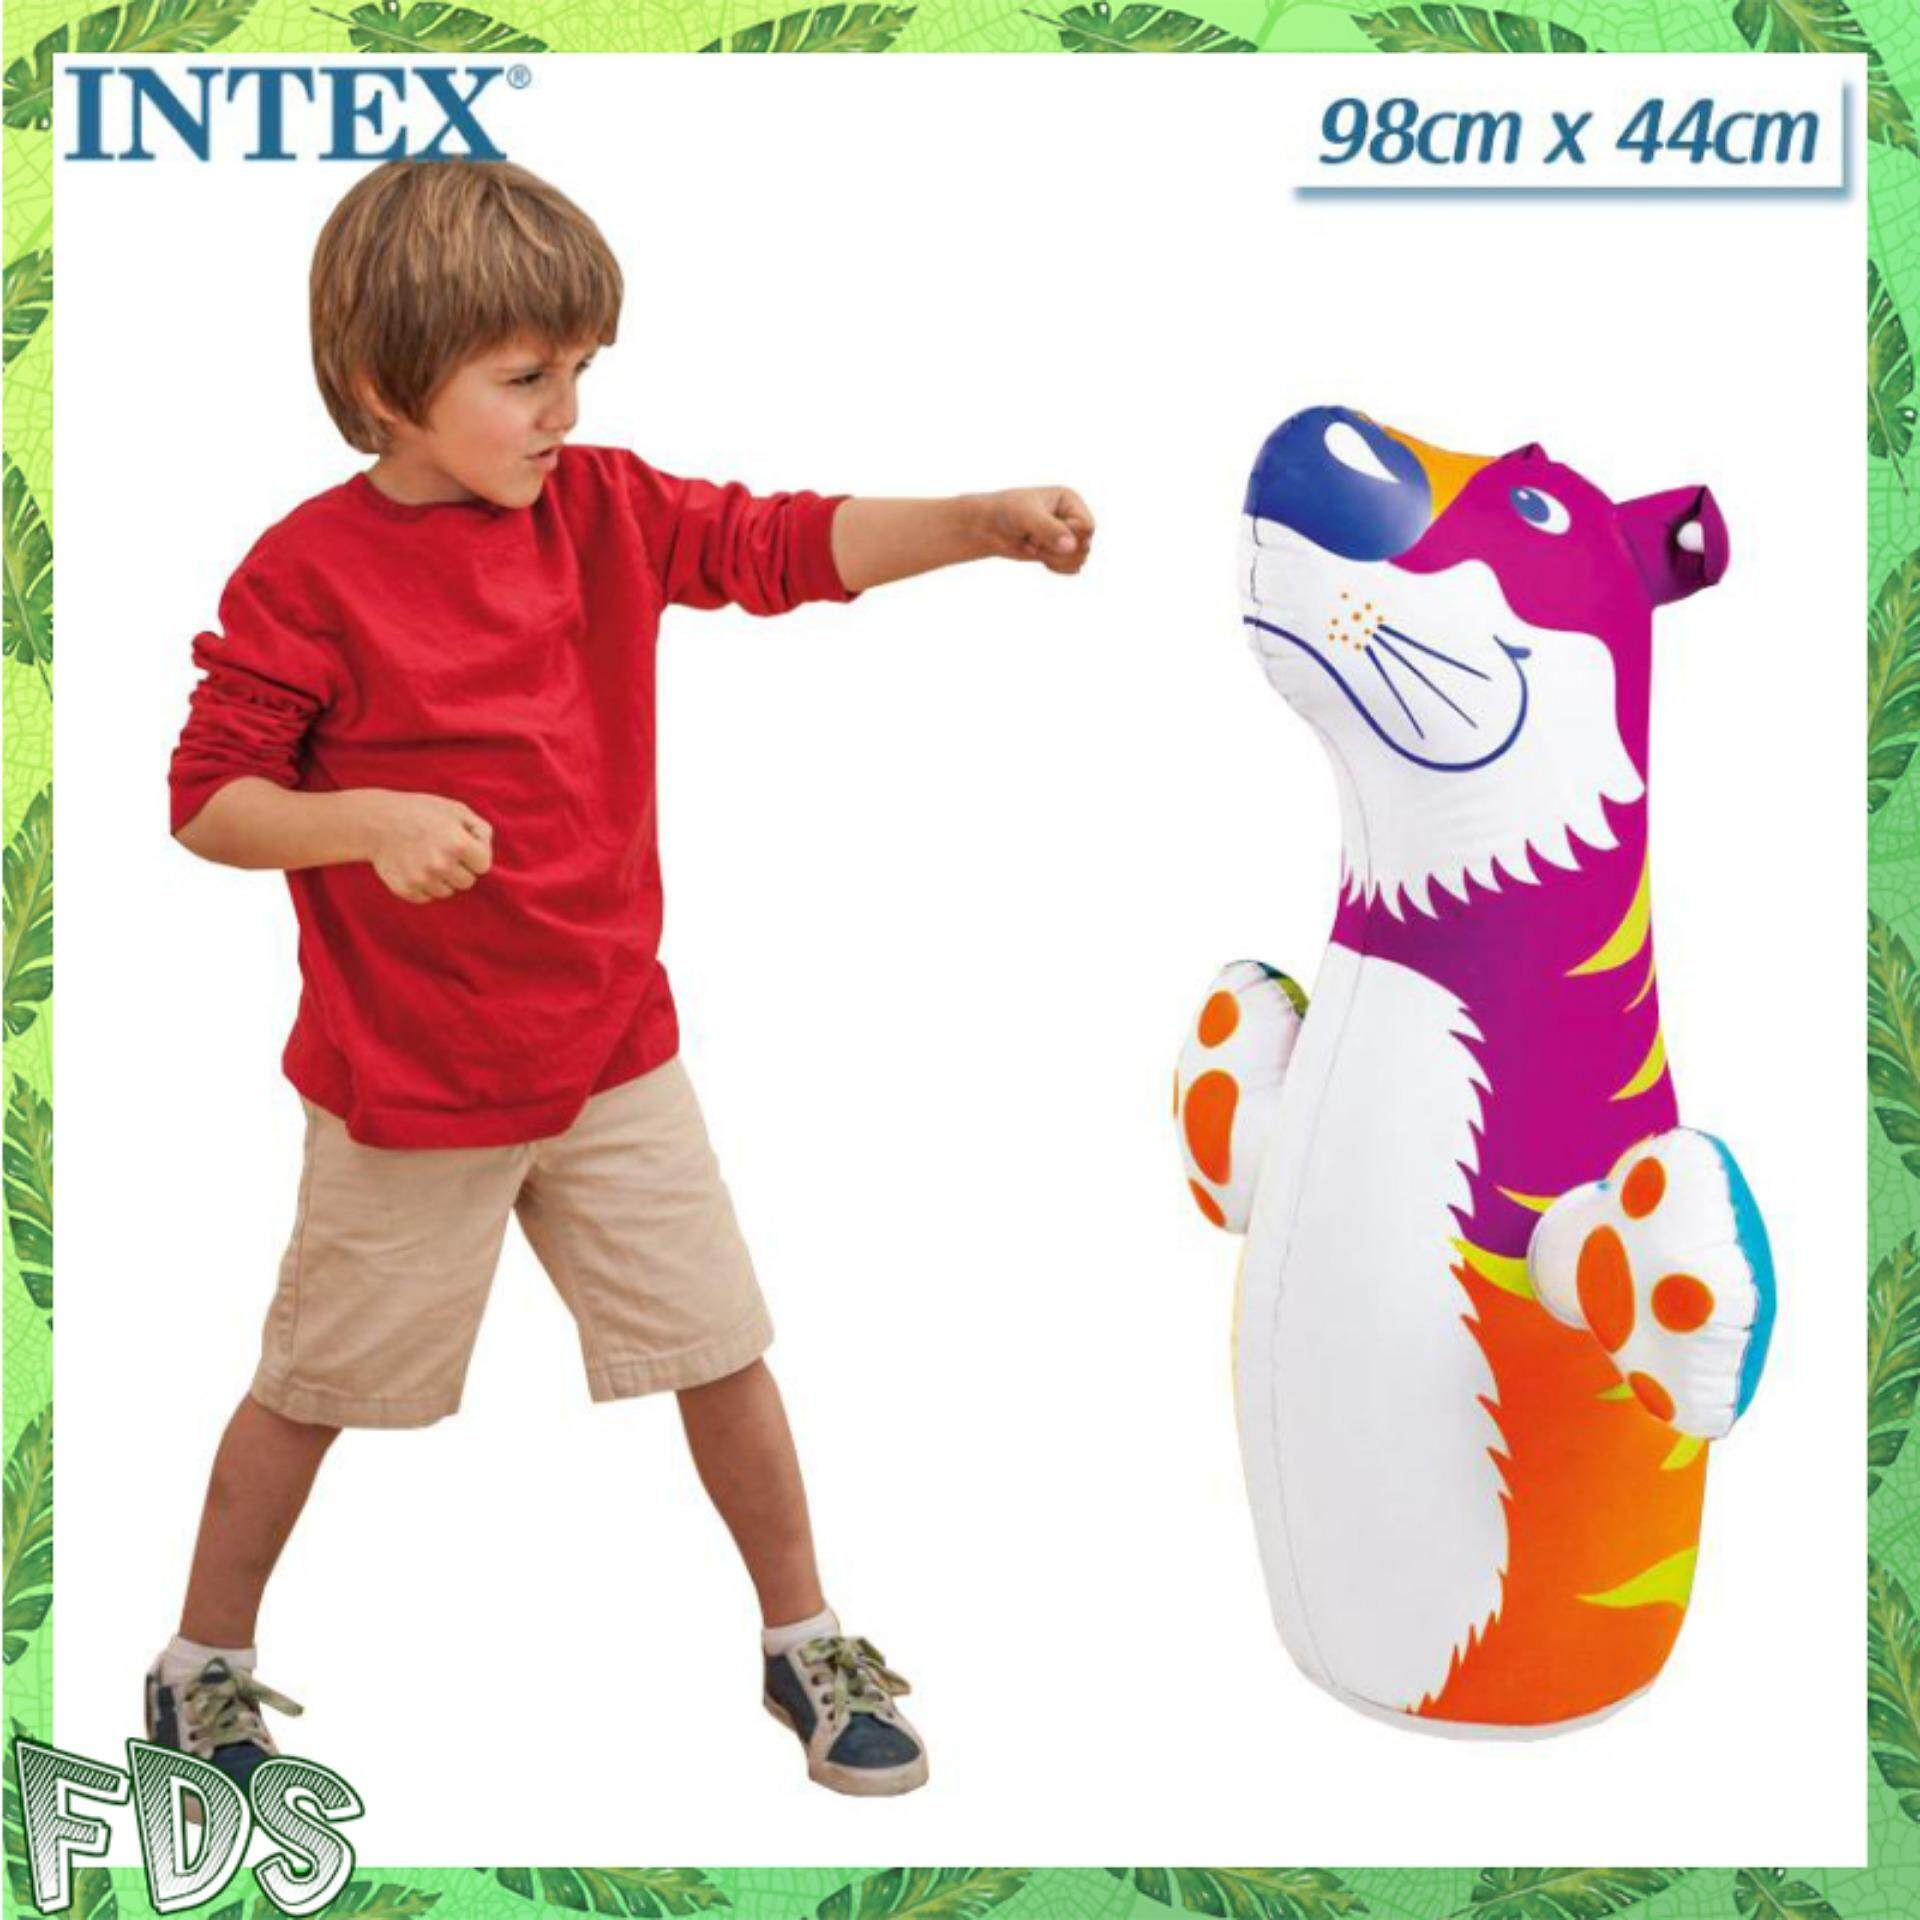 Intex 44669 Inflatable Animal Toy Children 3d Bop Bags Designs Boxing Punch Bag Internal Water By Factory Direct Store.